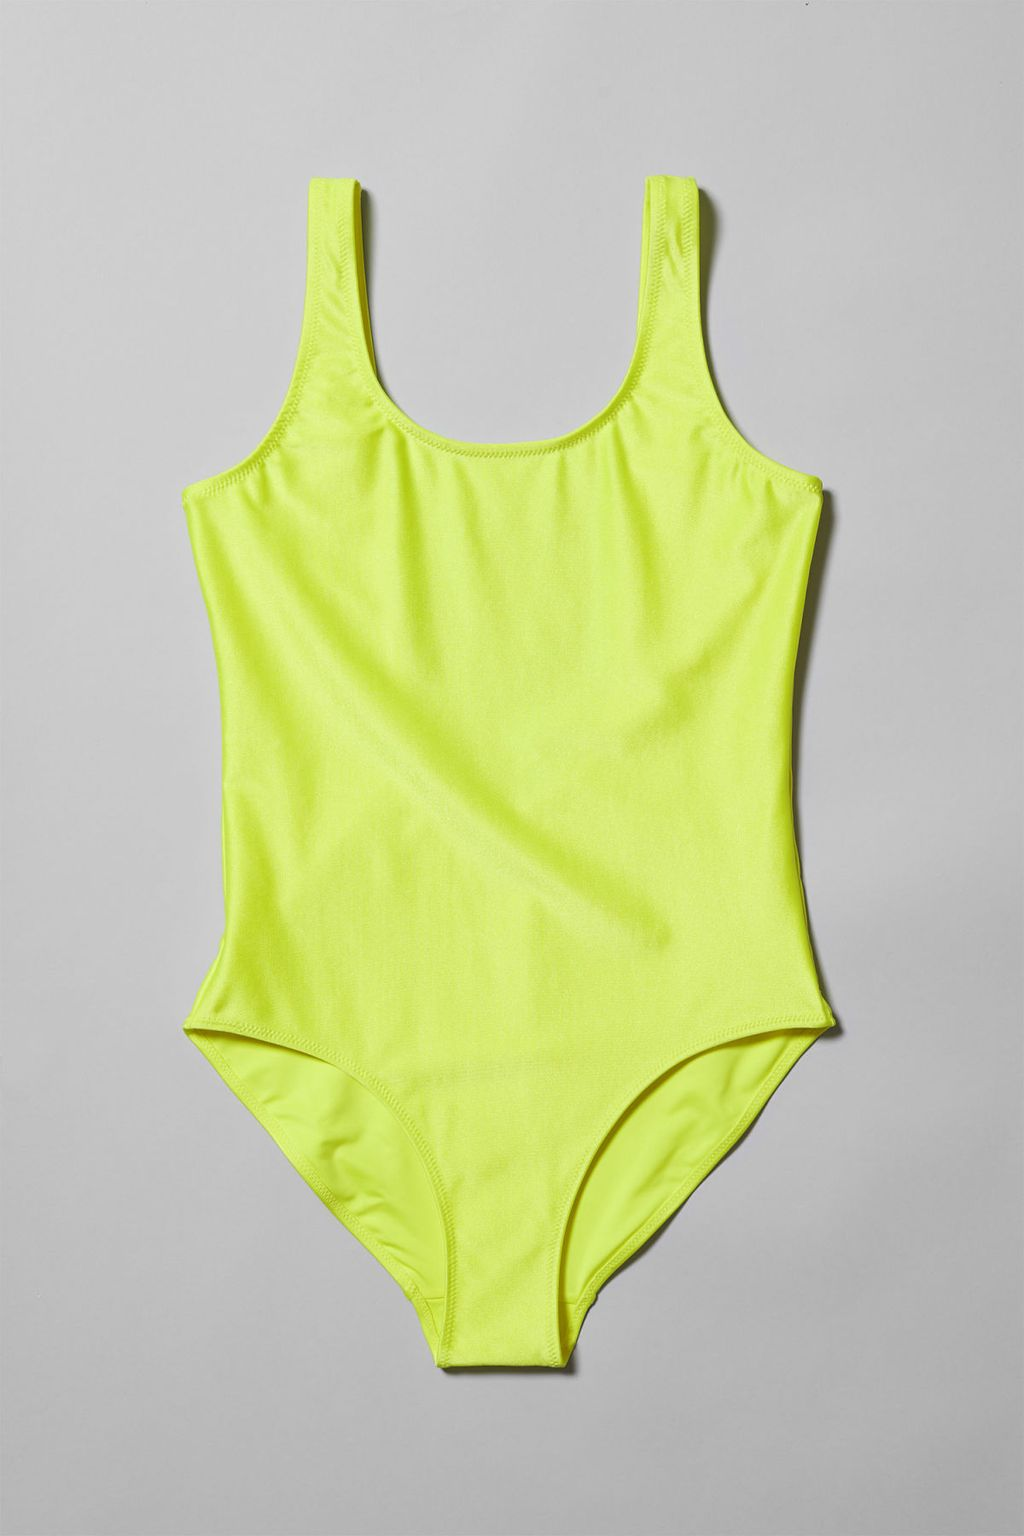 966d955b2c Day Swimsuit - Weekday